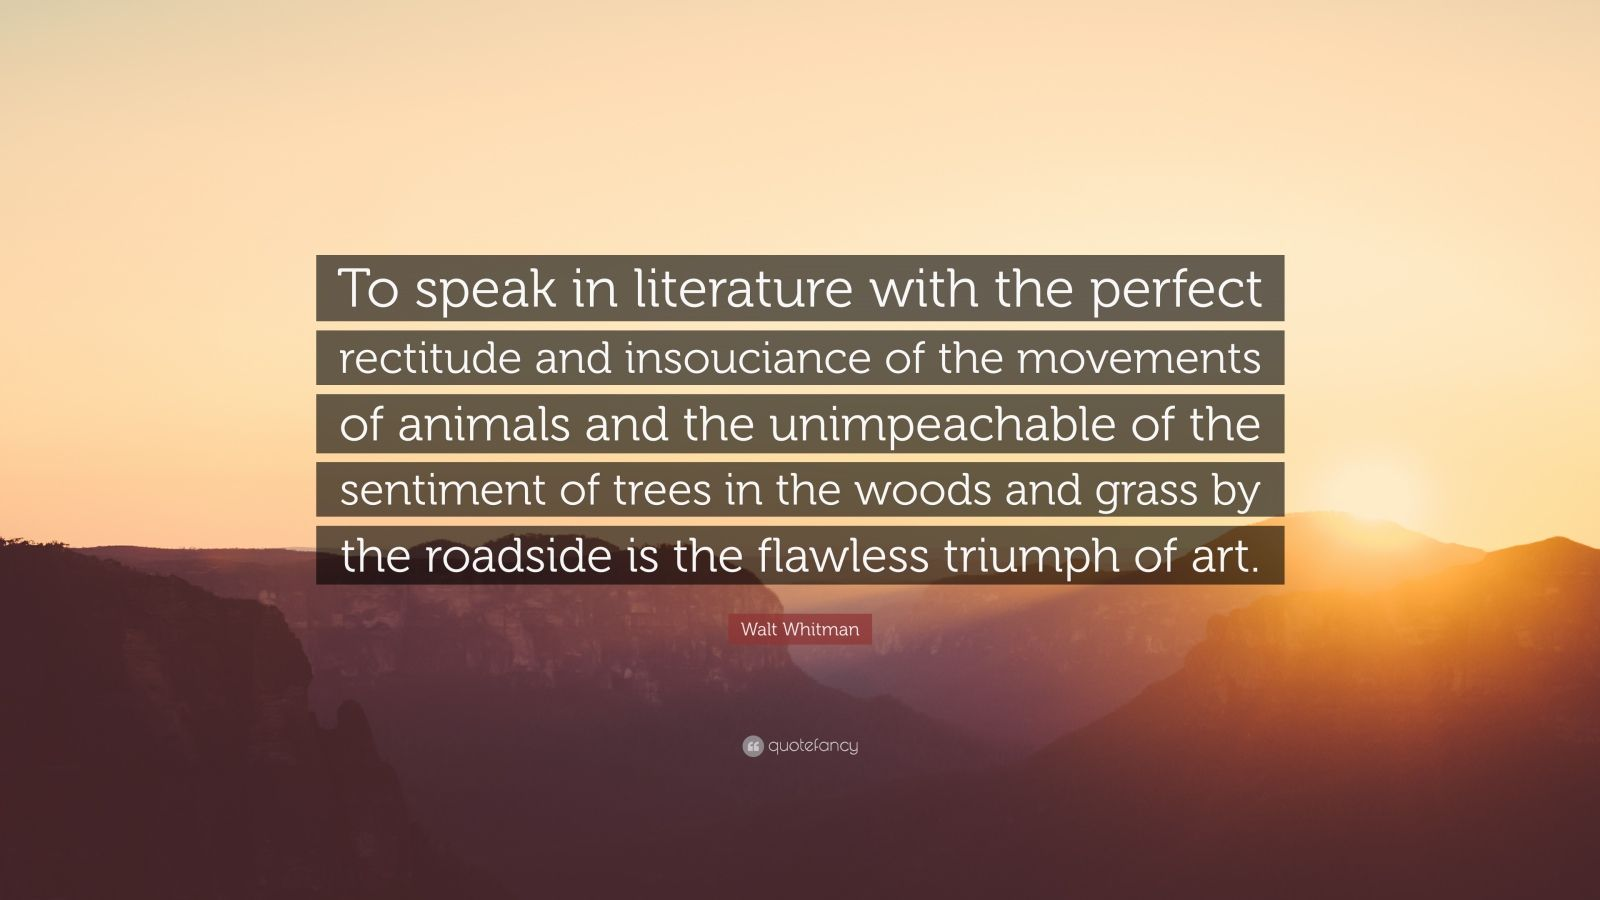 """Walt Whitman Quote: """"To speak in literature with the perfect rectitude and insouciance of the movements of animals and the unimpeachable of the sentiment of trees in the woods and grass by the roadside is the flawless triumph of art."""""""